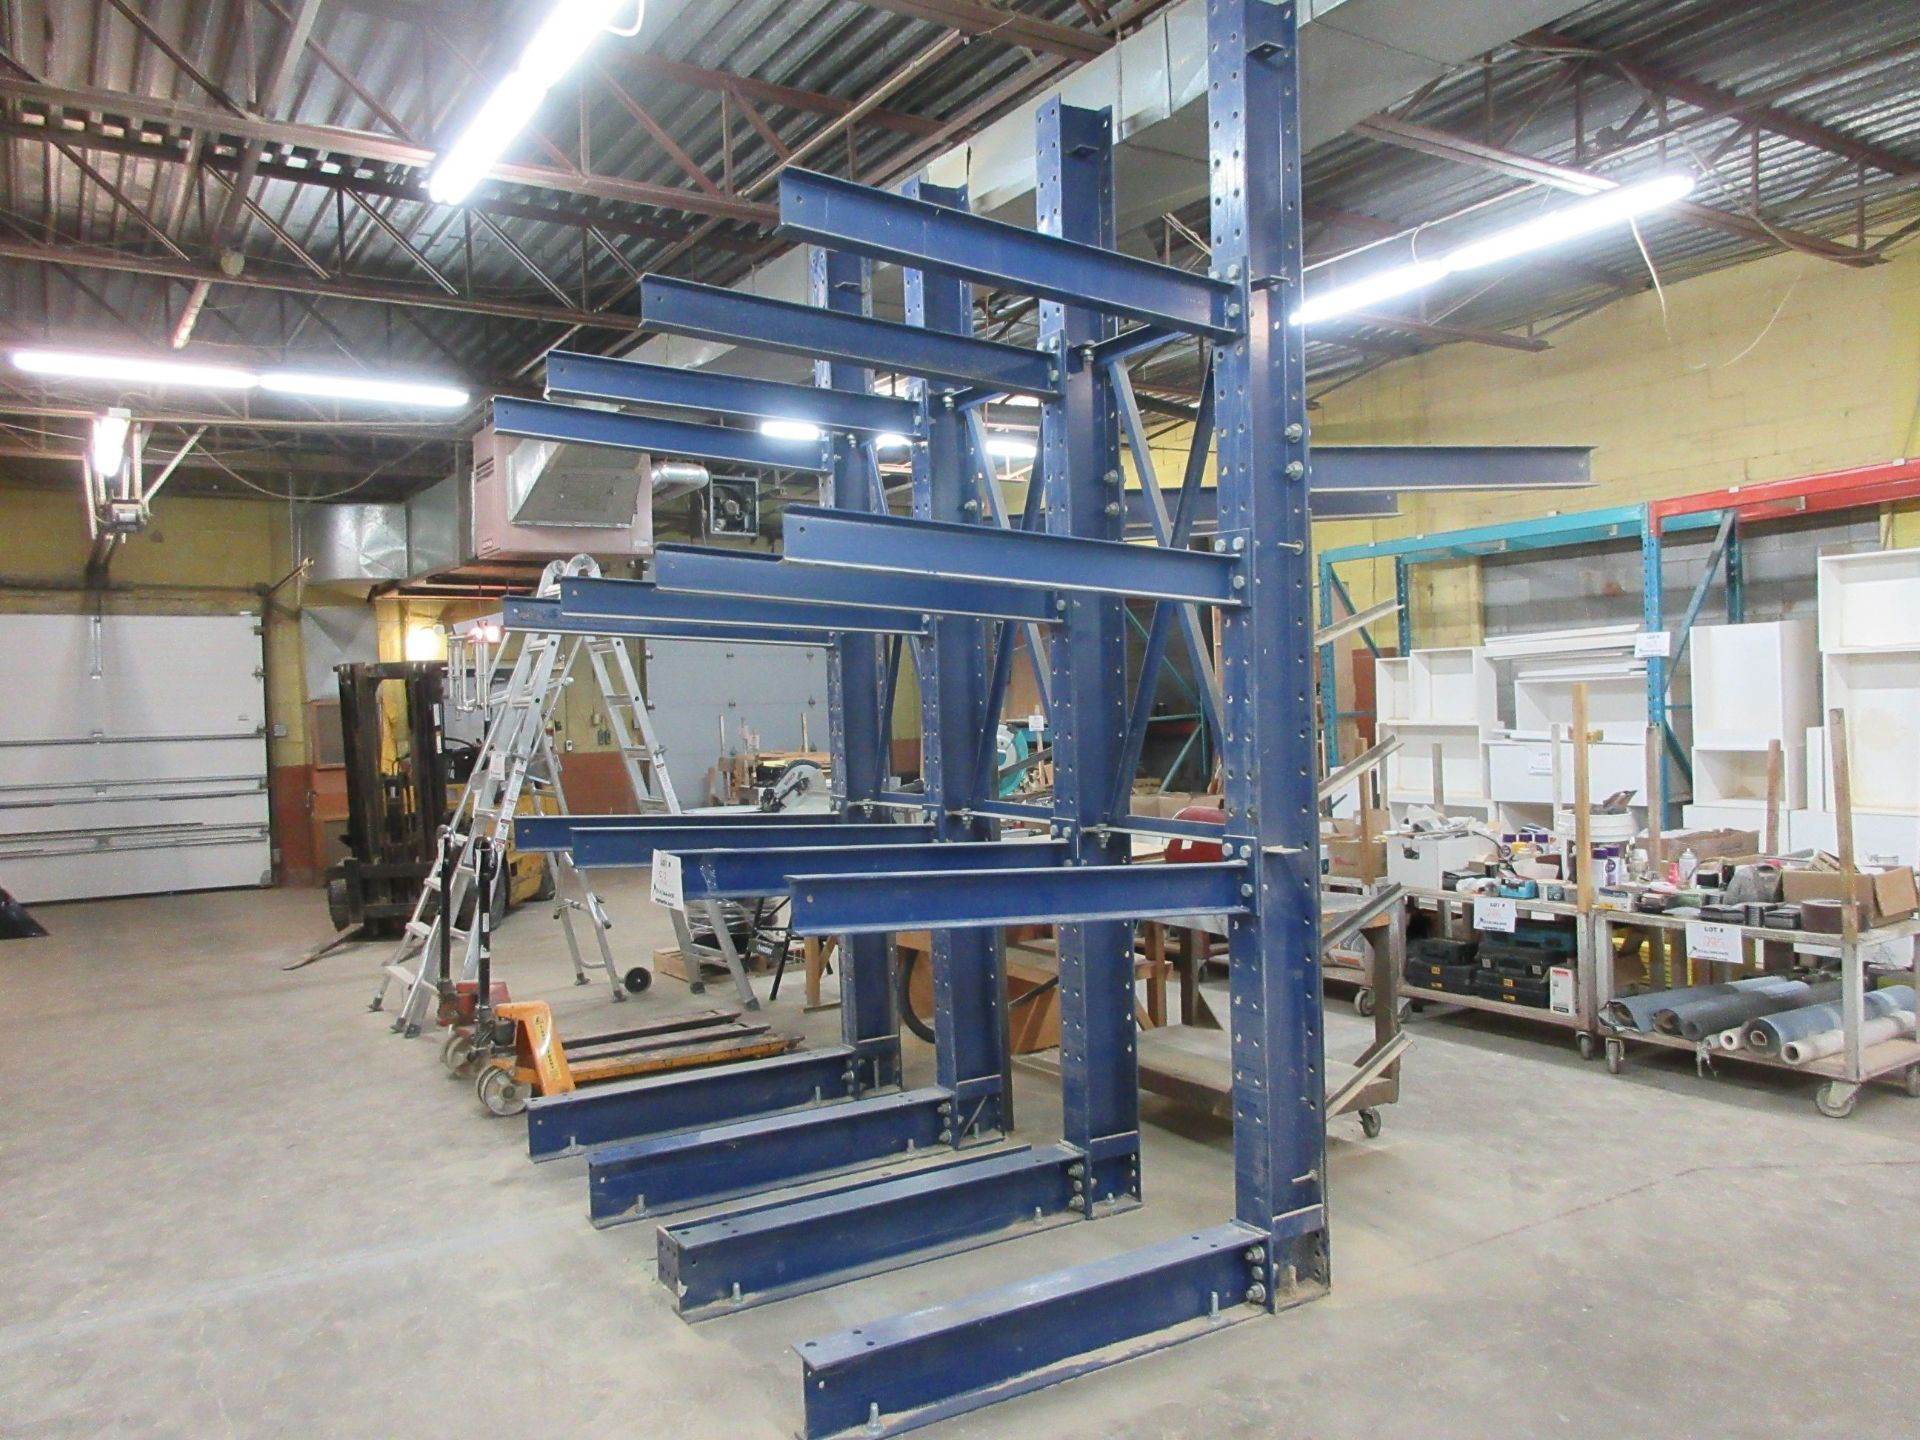 """Lot 53 - CANTILEVER 2 sided heavy duty industrial wood racking 101""""w x 139"""" h x 60"""" d"""